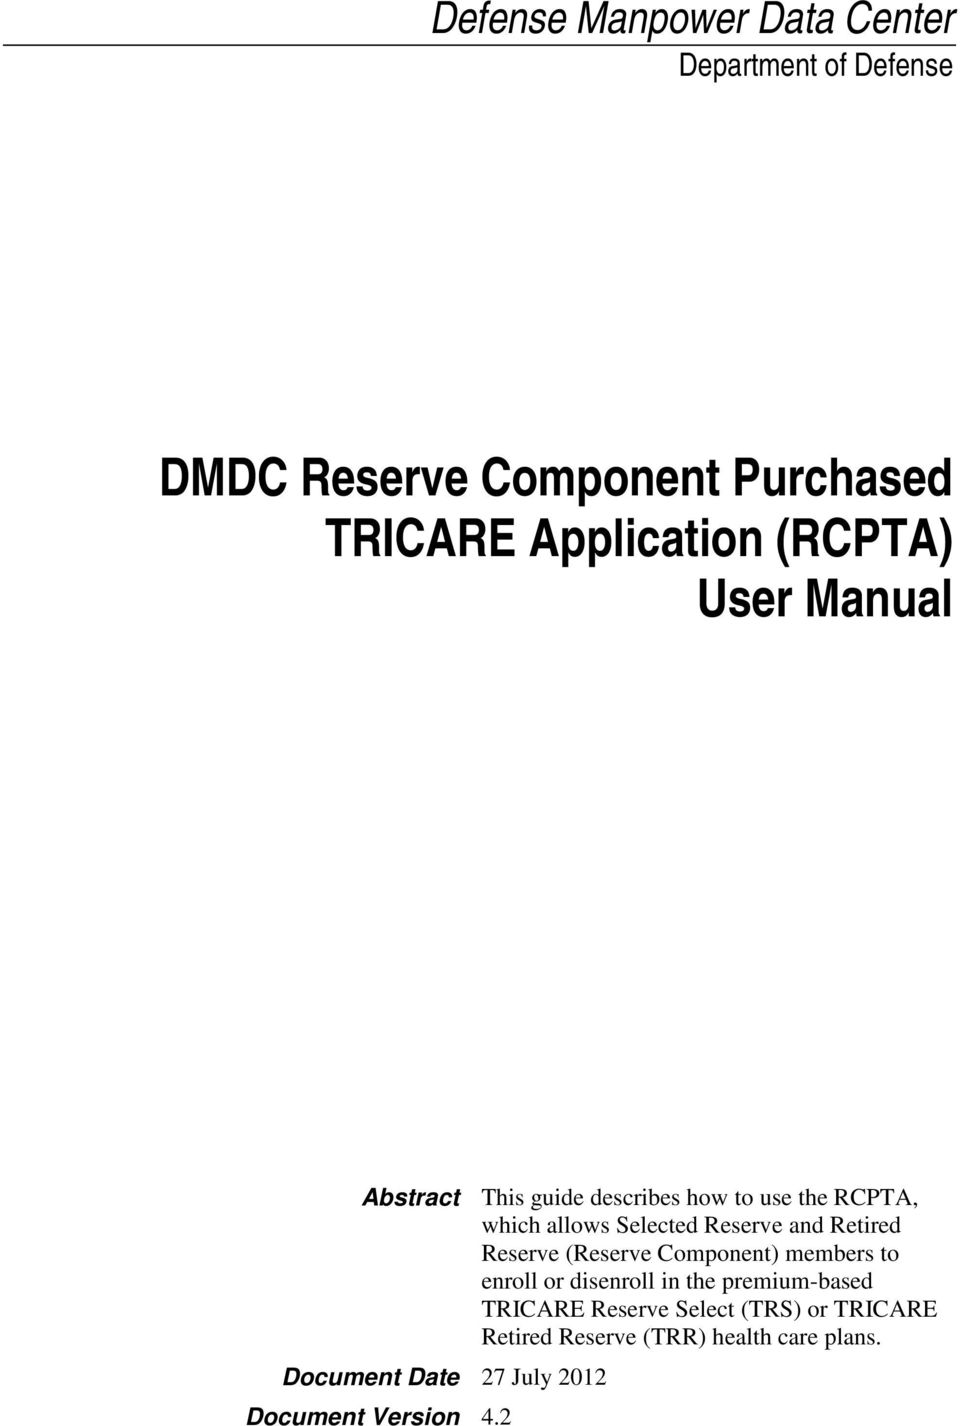 Retired Reserve (Reserve Component) members to enroll or disenroll in the premium-based TRICARE Reserve